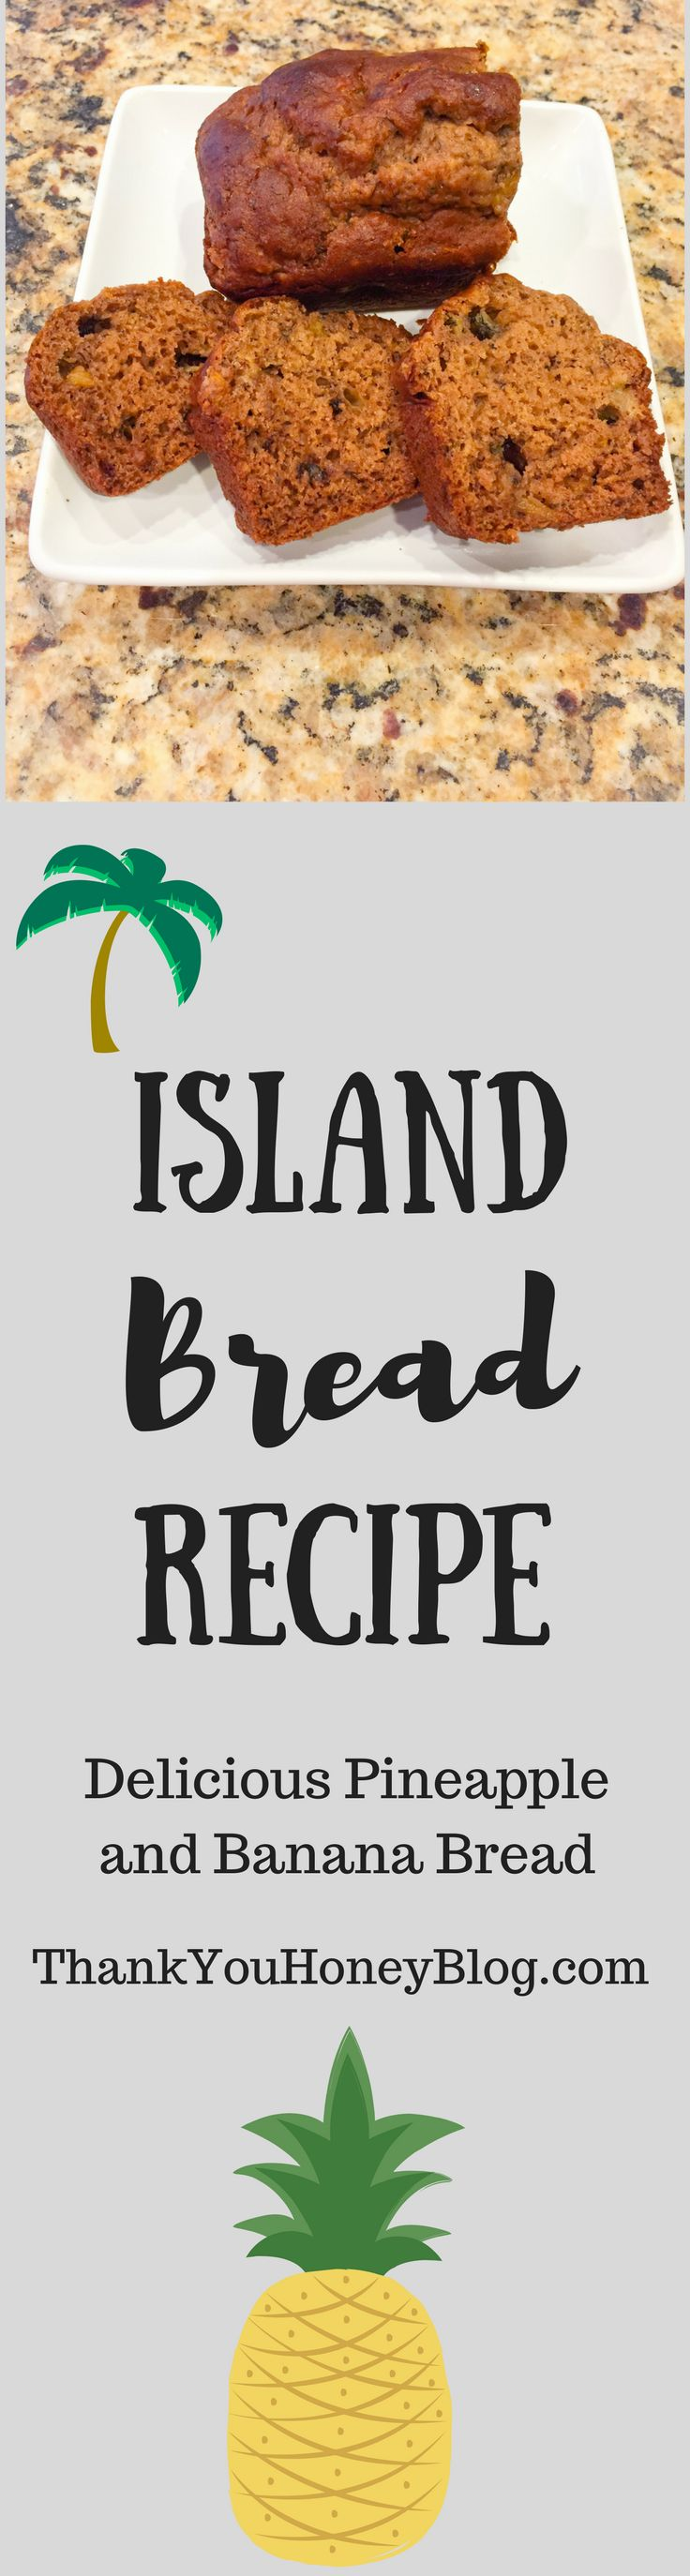 Homemade delicious Island Bread made with bananas and pineapple. It's absolutely delicious. #bread #Recipe #breadrecipe #homemade